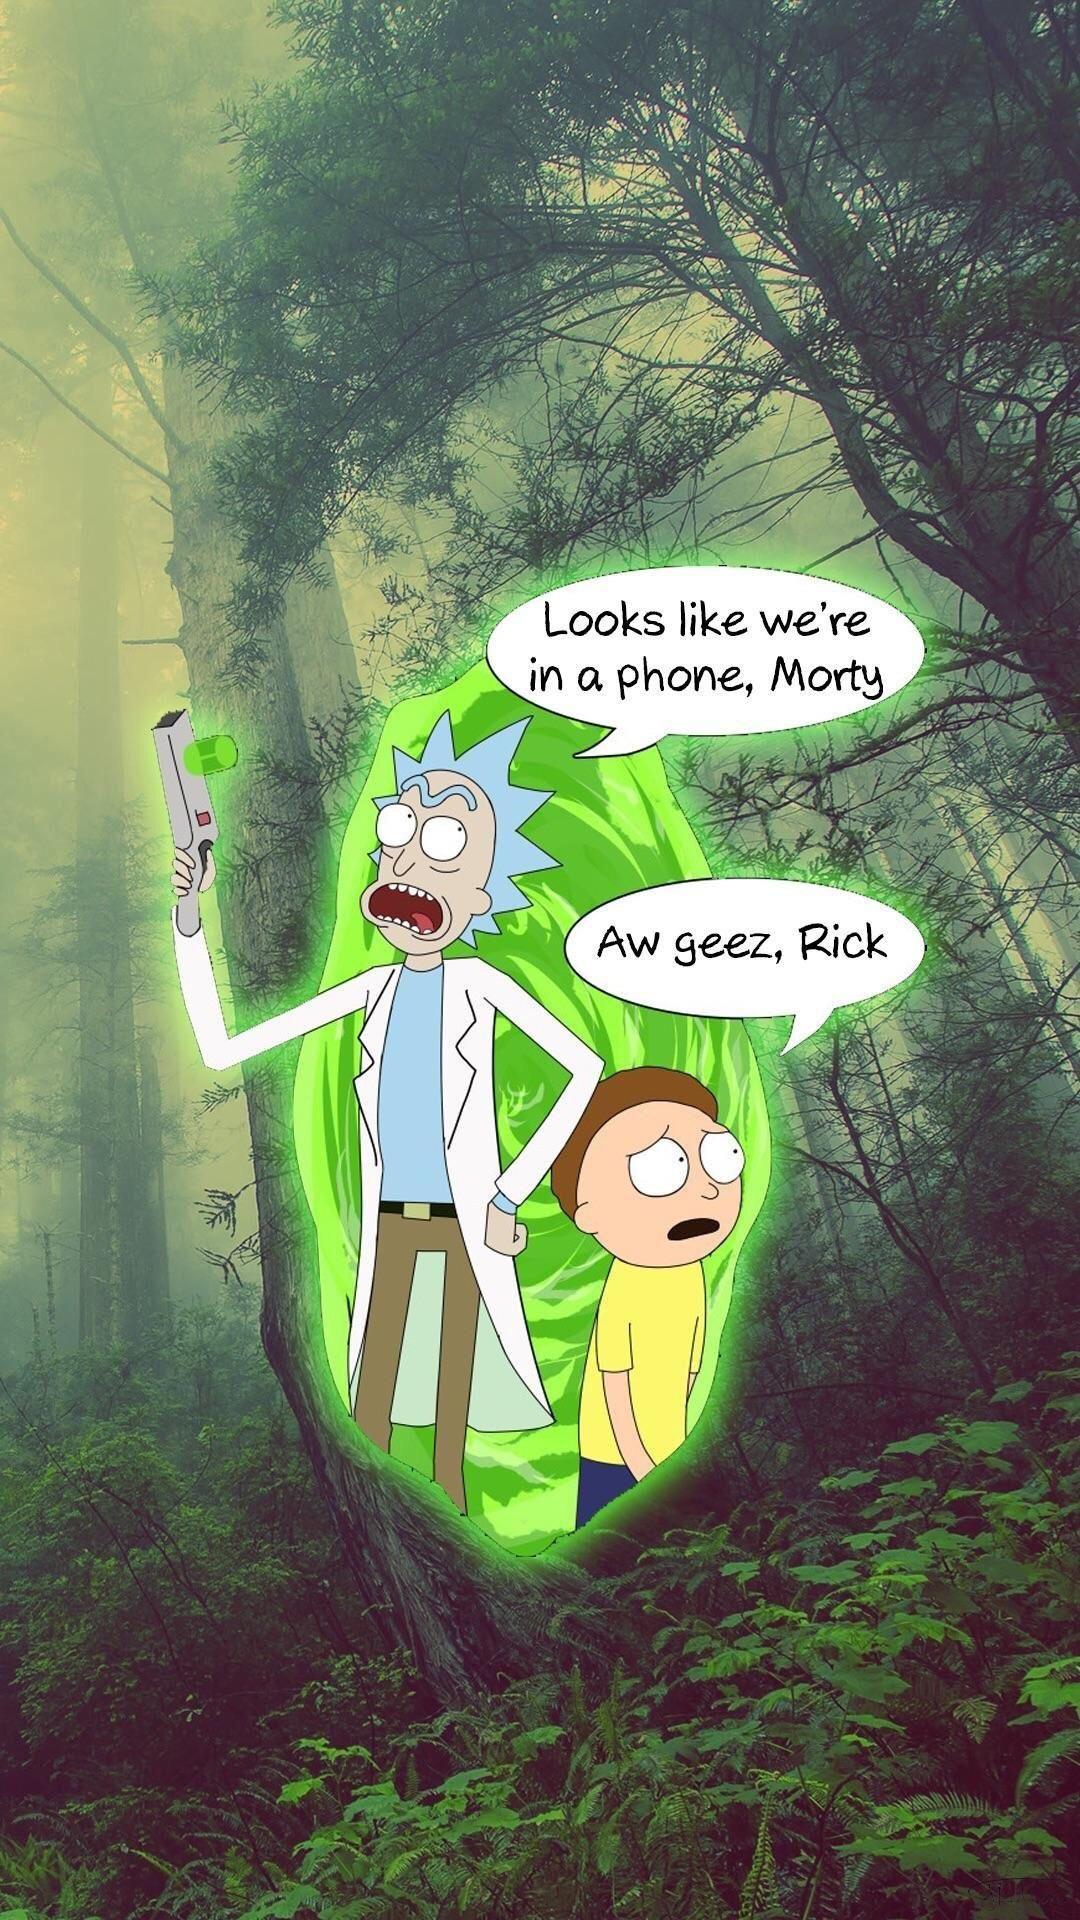 Image Result For Rick And Morty Wallpaper Iphone Rick En Morty Achtergrond Iphone Achtergronden